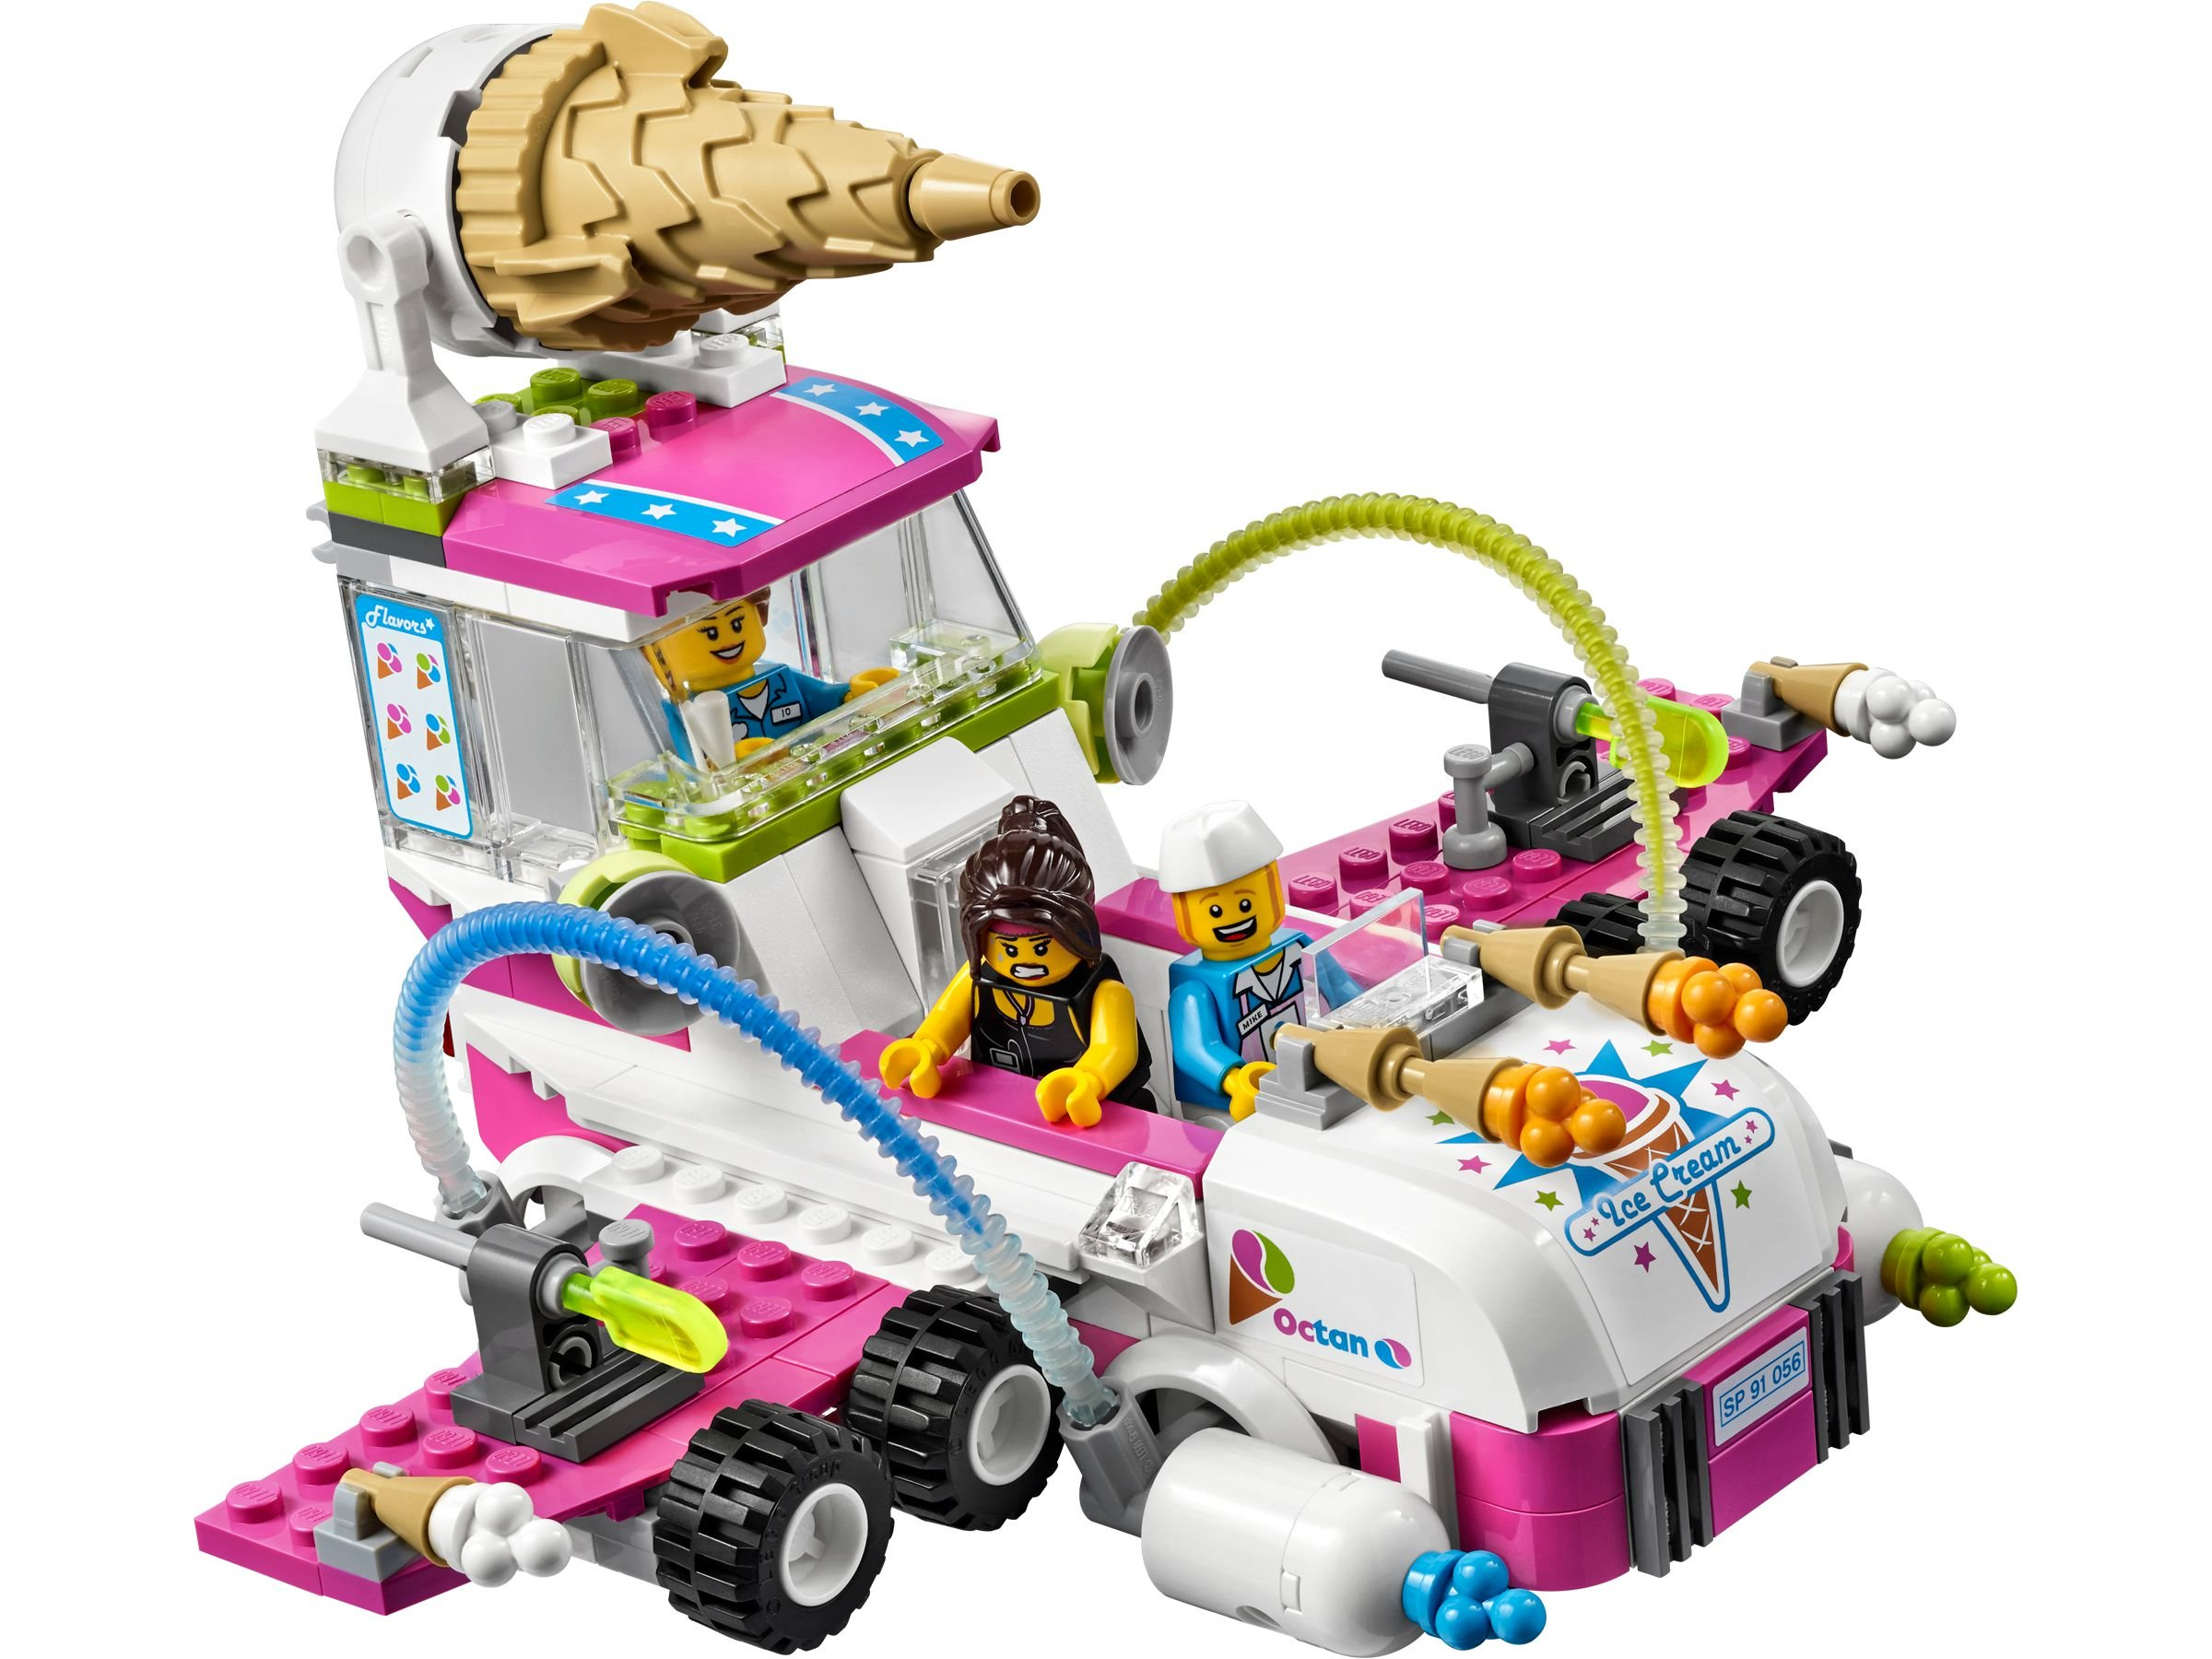 LEGO The LEGO Movie 70804 Eiscremewagen LEGO_70804_alt2.jpg